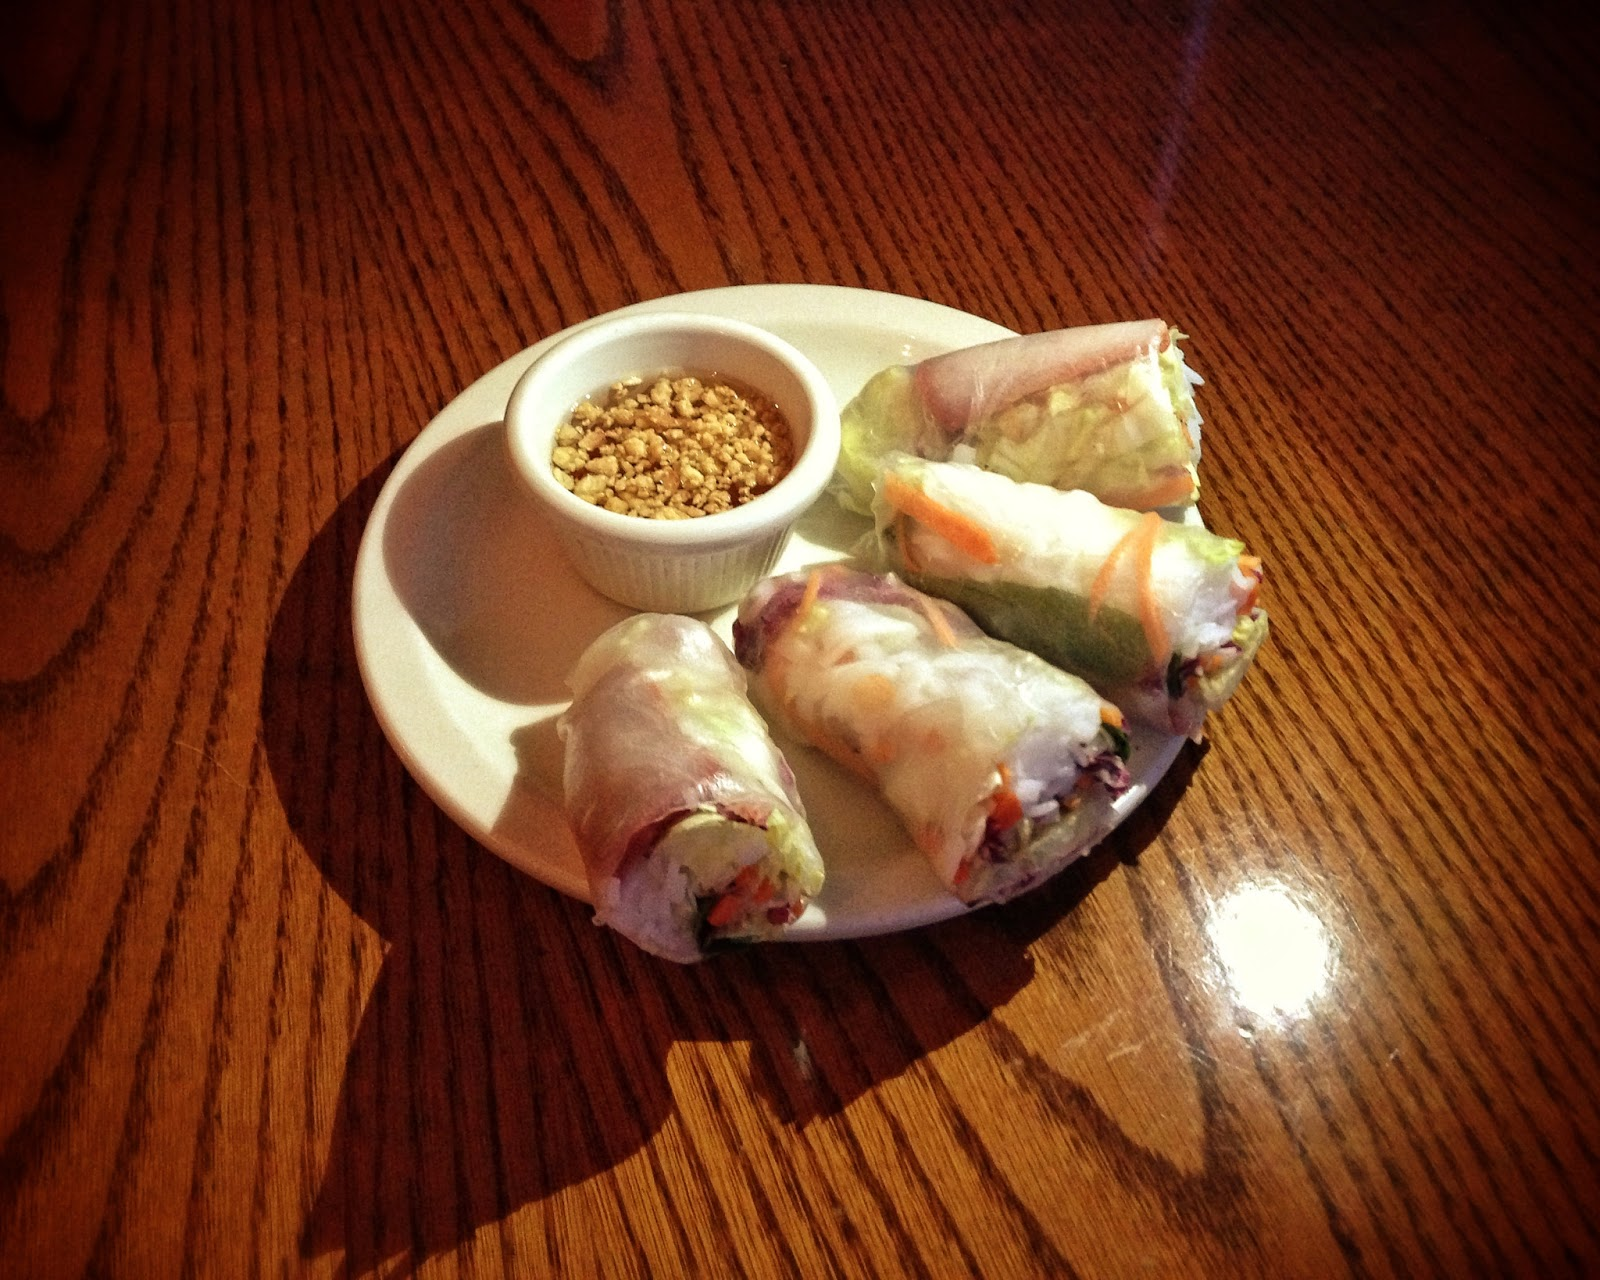 Pork spring rolls at Royal Thai restaurant in Nashville Tennessee